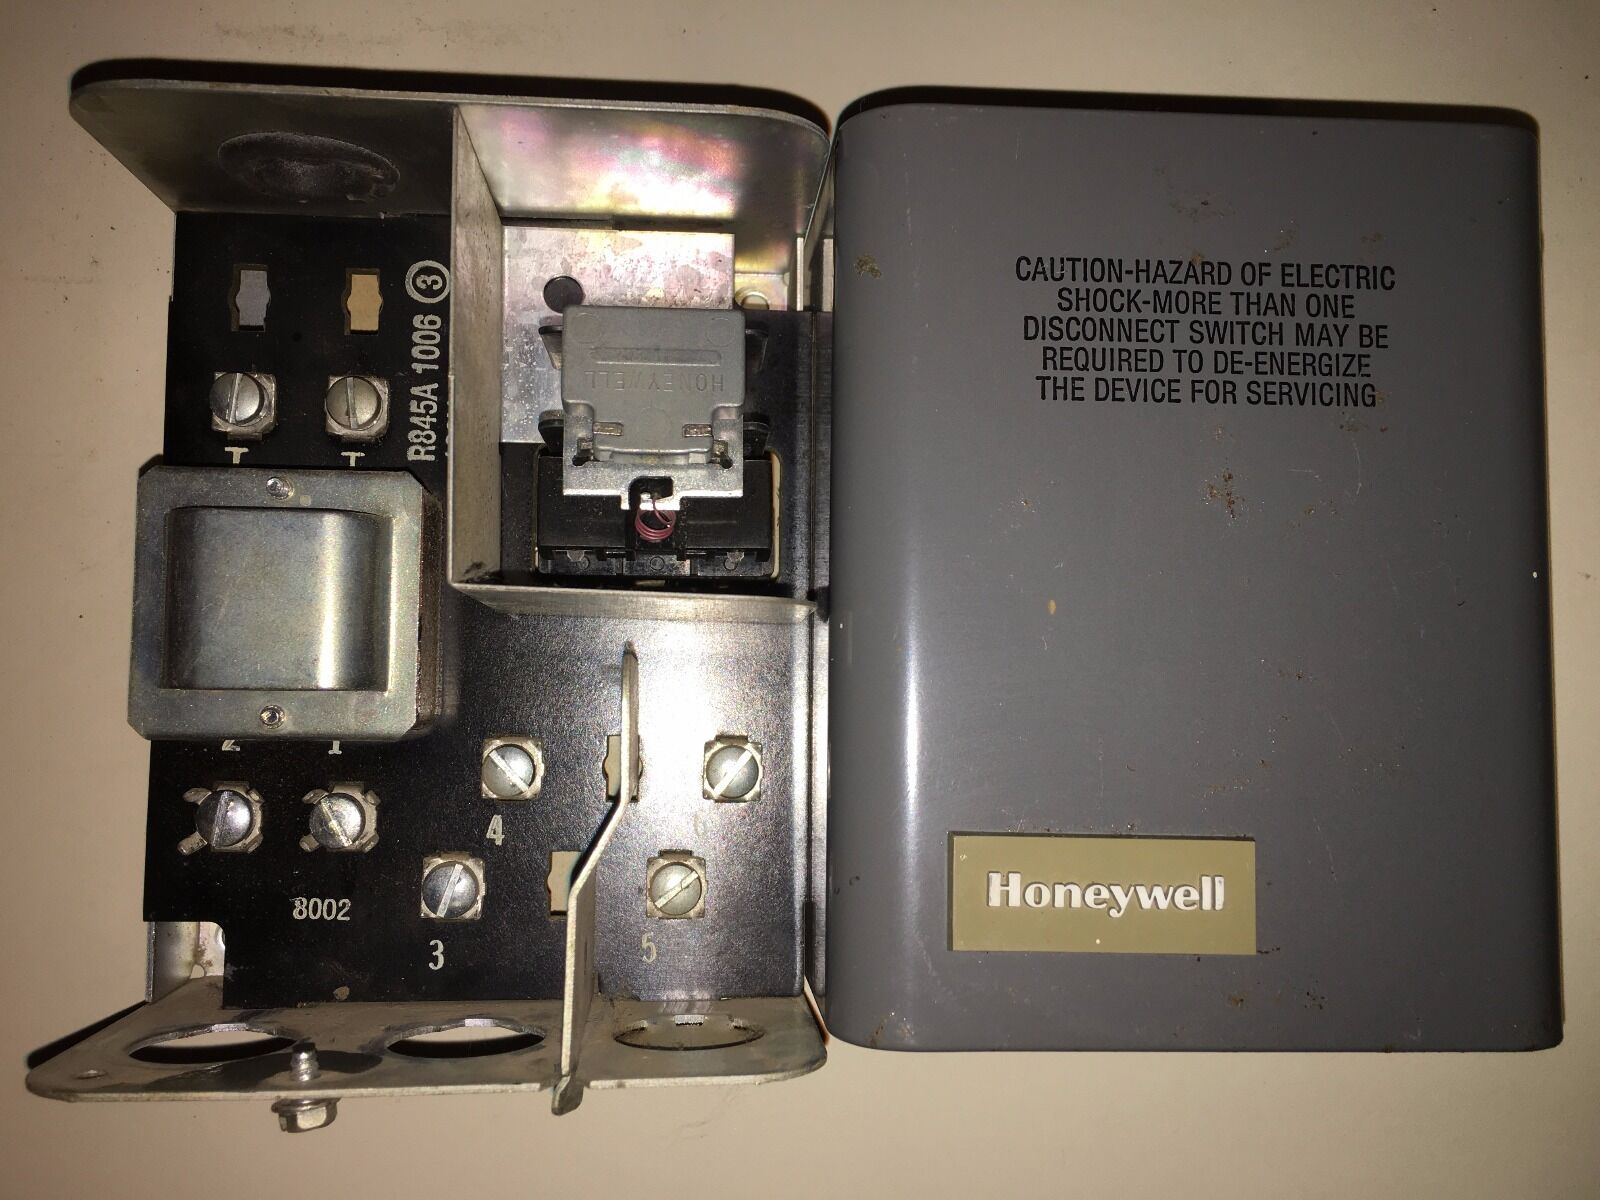 s l1600 honeywell switching relay wiring diagram dolgular com honeywell r845a wiring diagram at gsmx.co